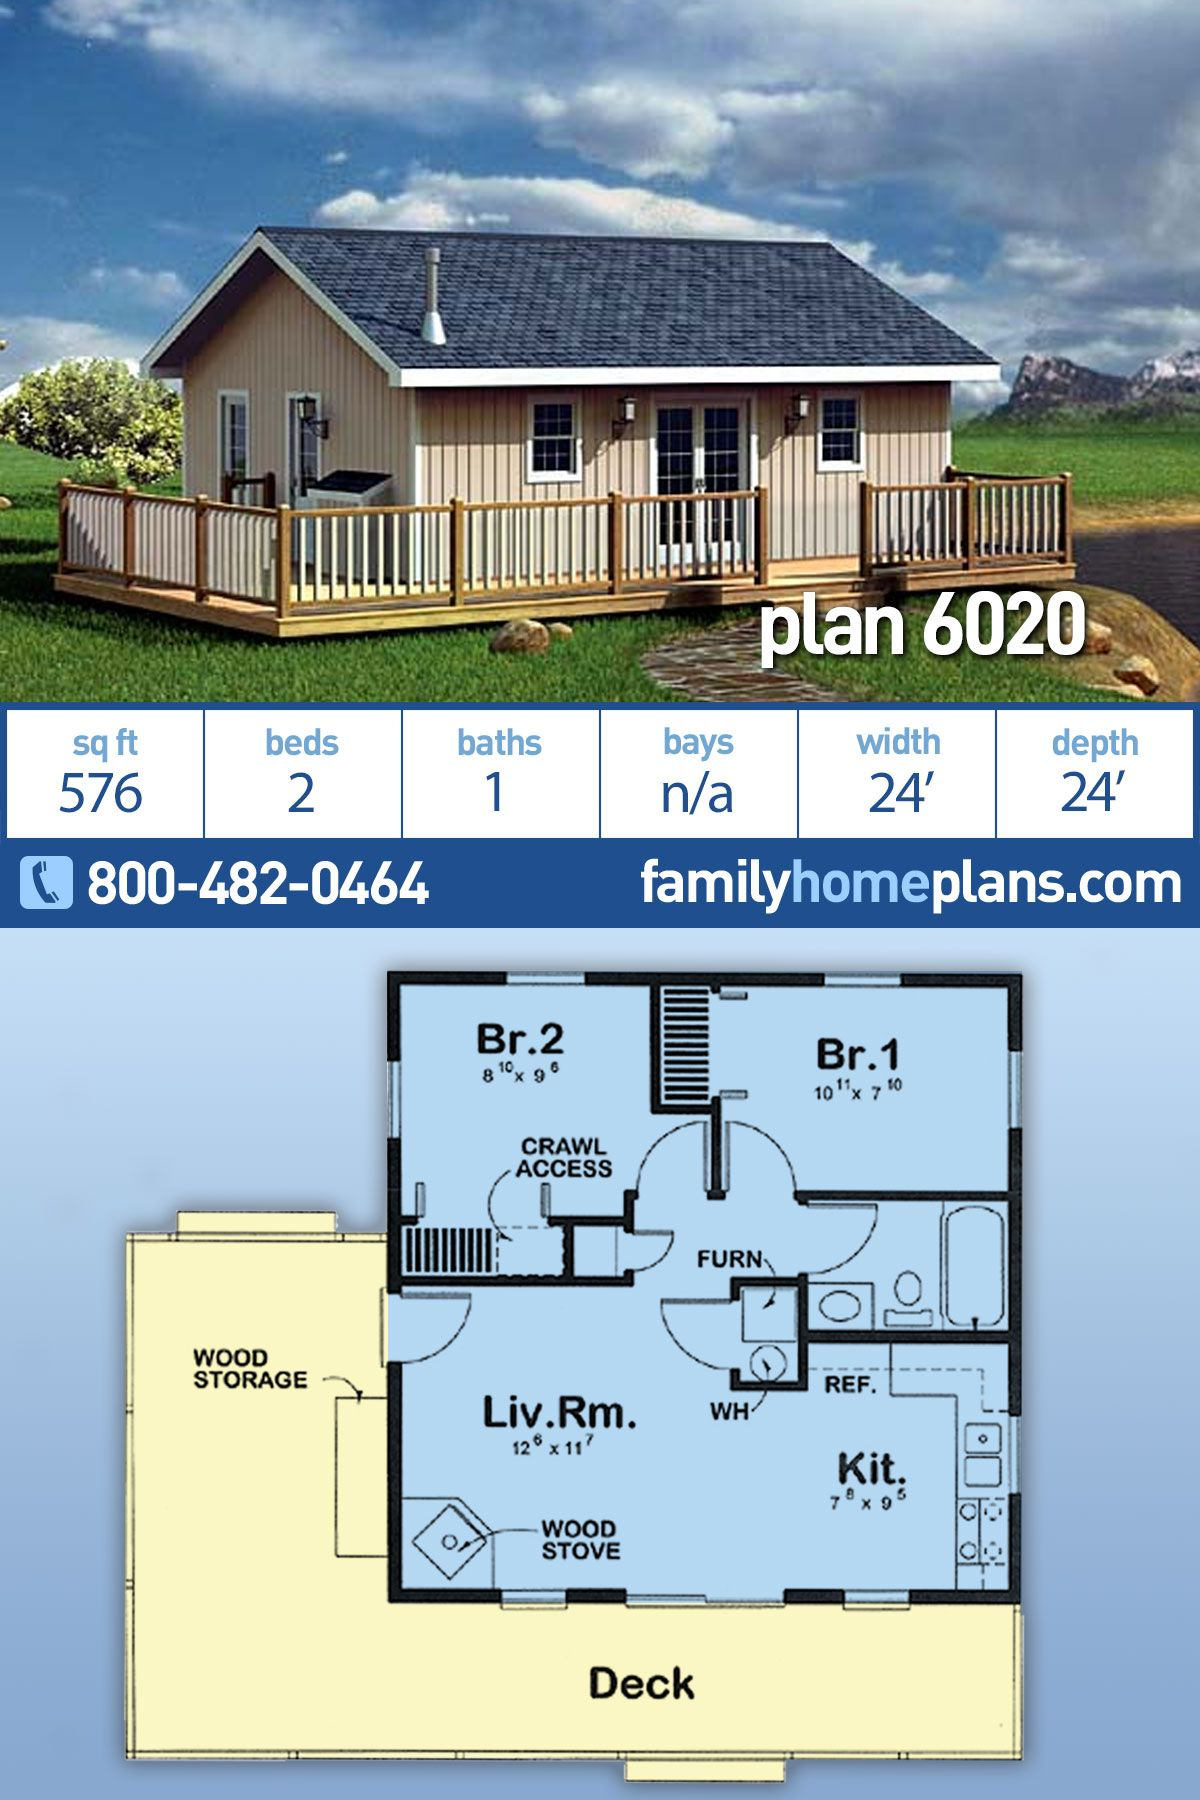 Traditional Style House Plan 6020 With 2 Bed 1 Bath Small House Design Plans My House Plans Small House Floor Plans